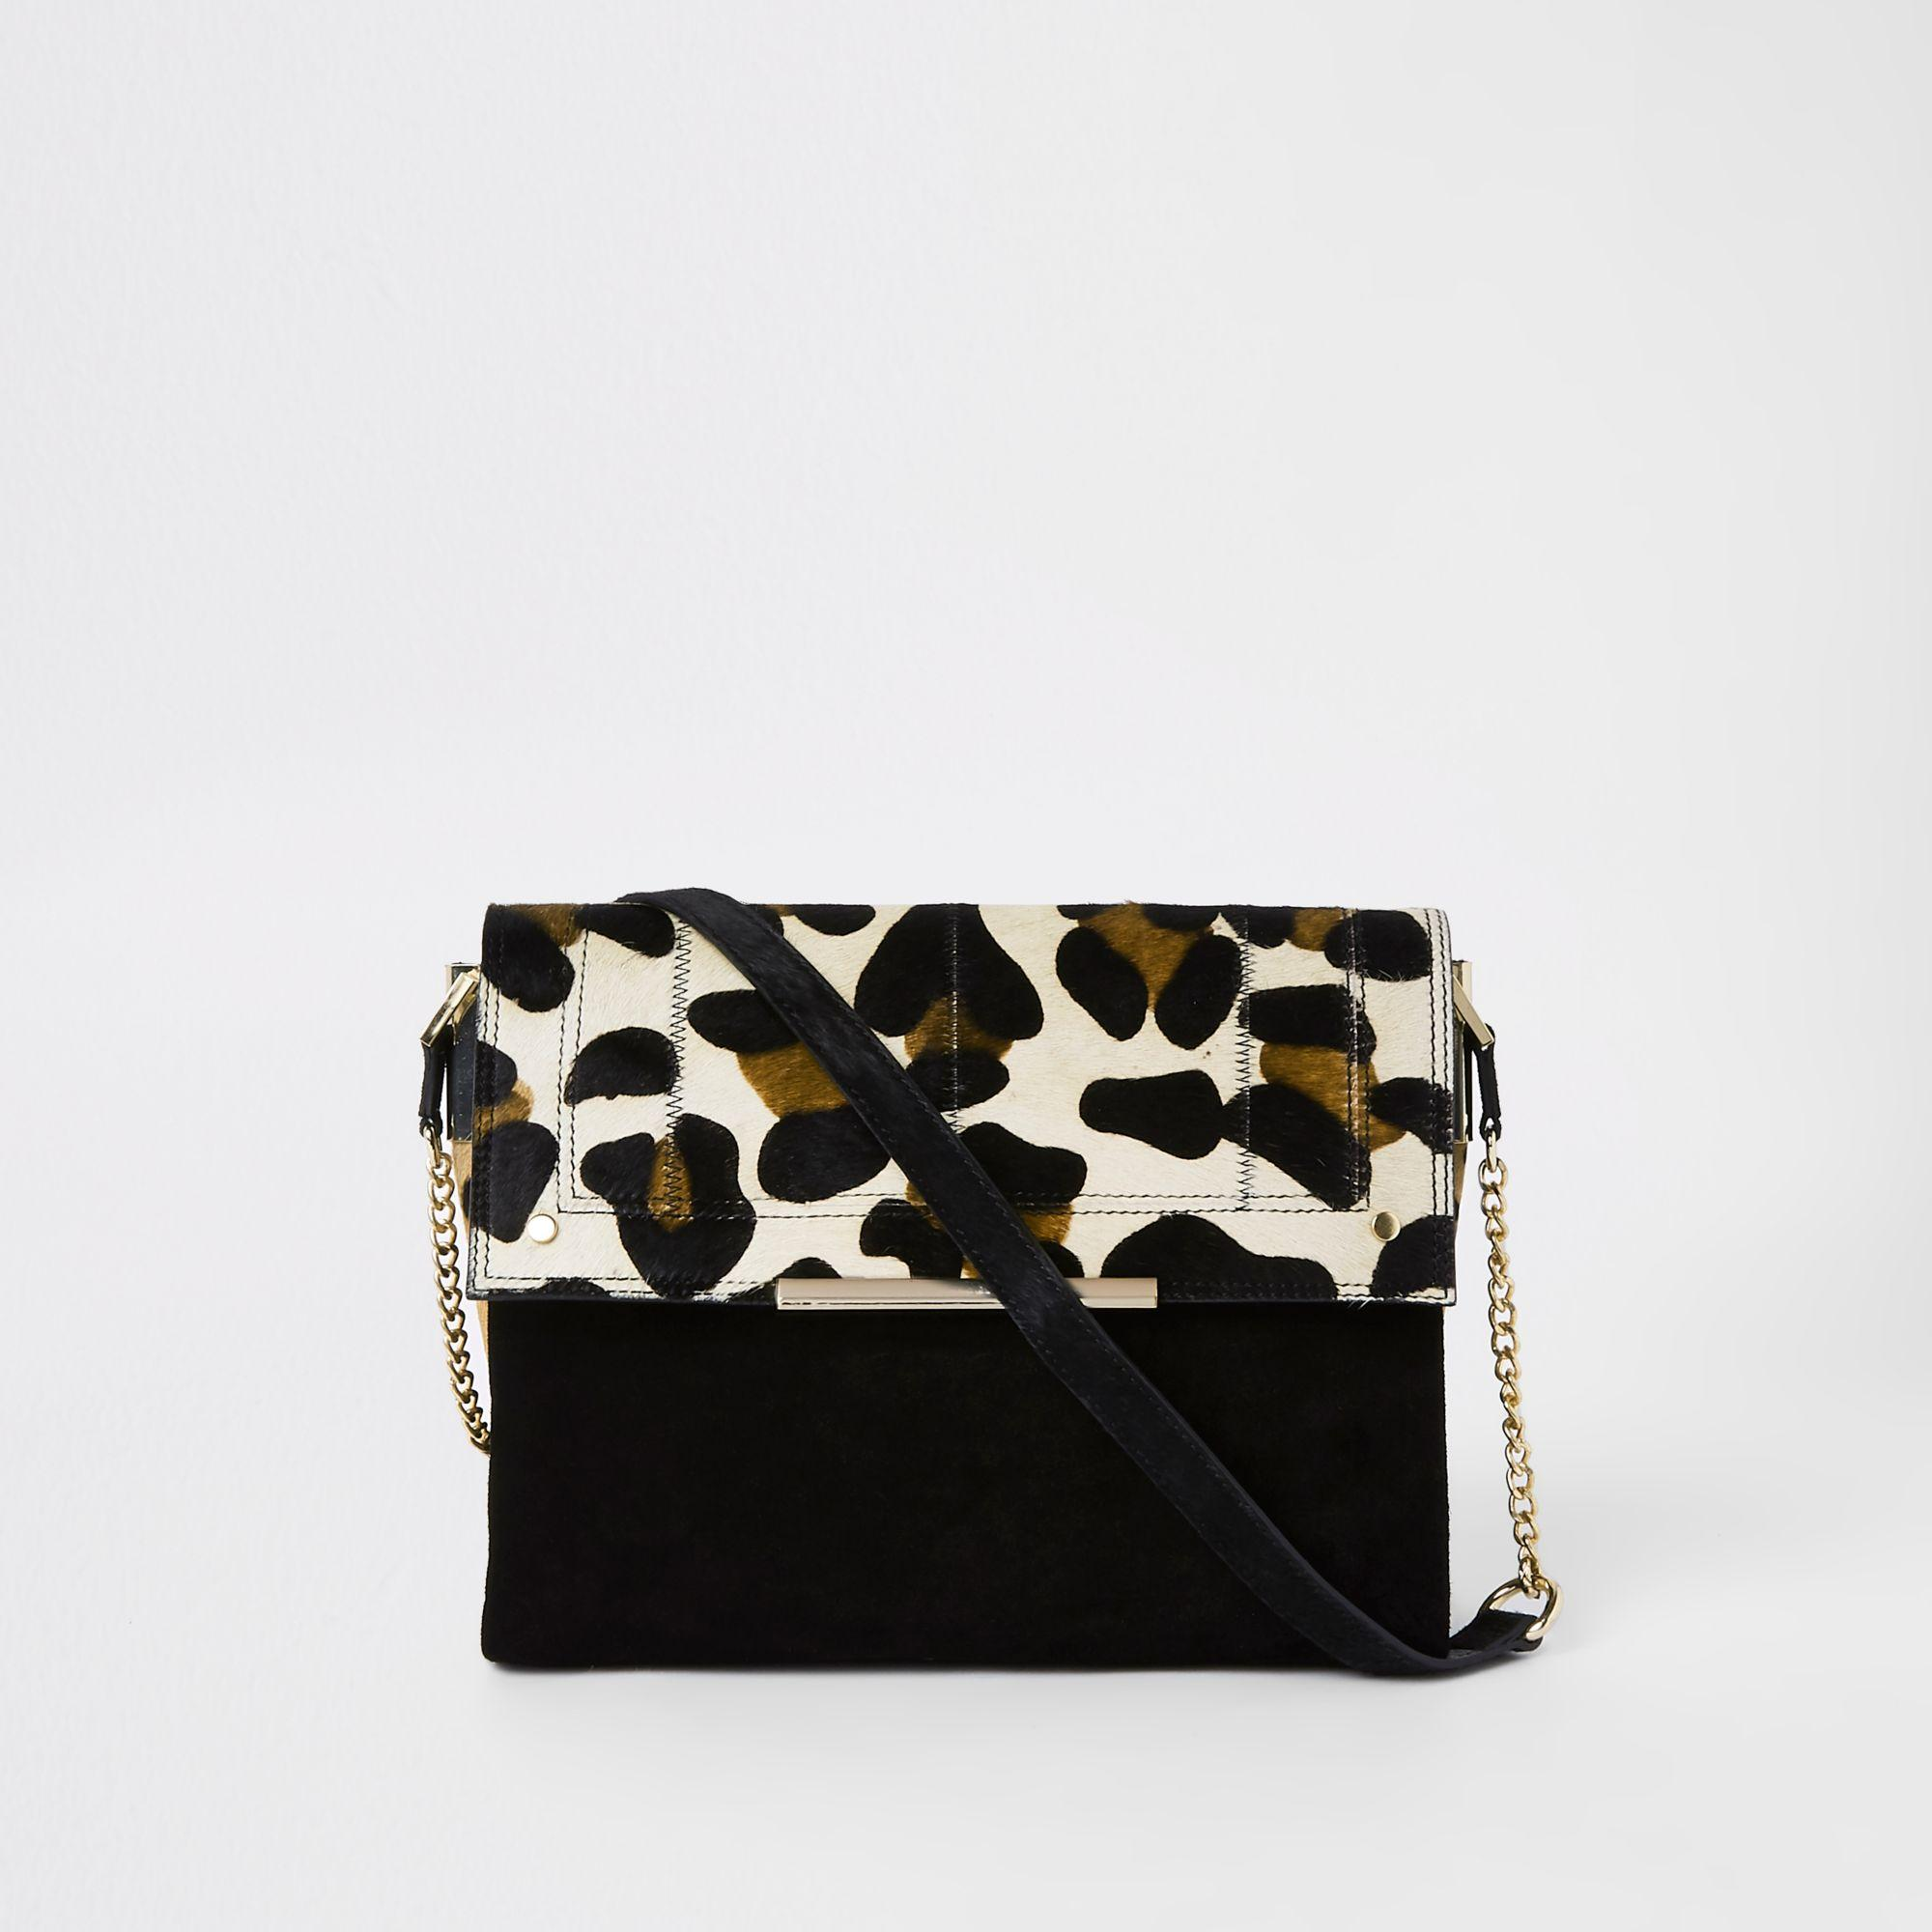 422175045fbc River Island Suede Leather Leopard Under Arm Bag in Black - Lyst